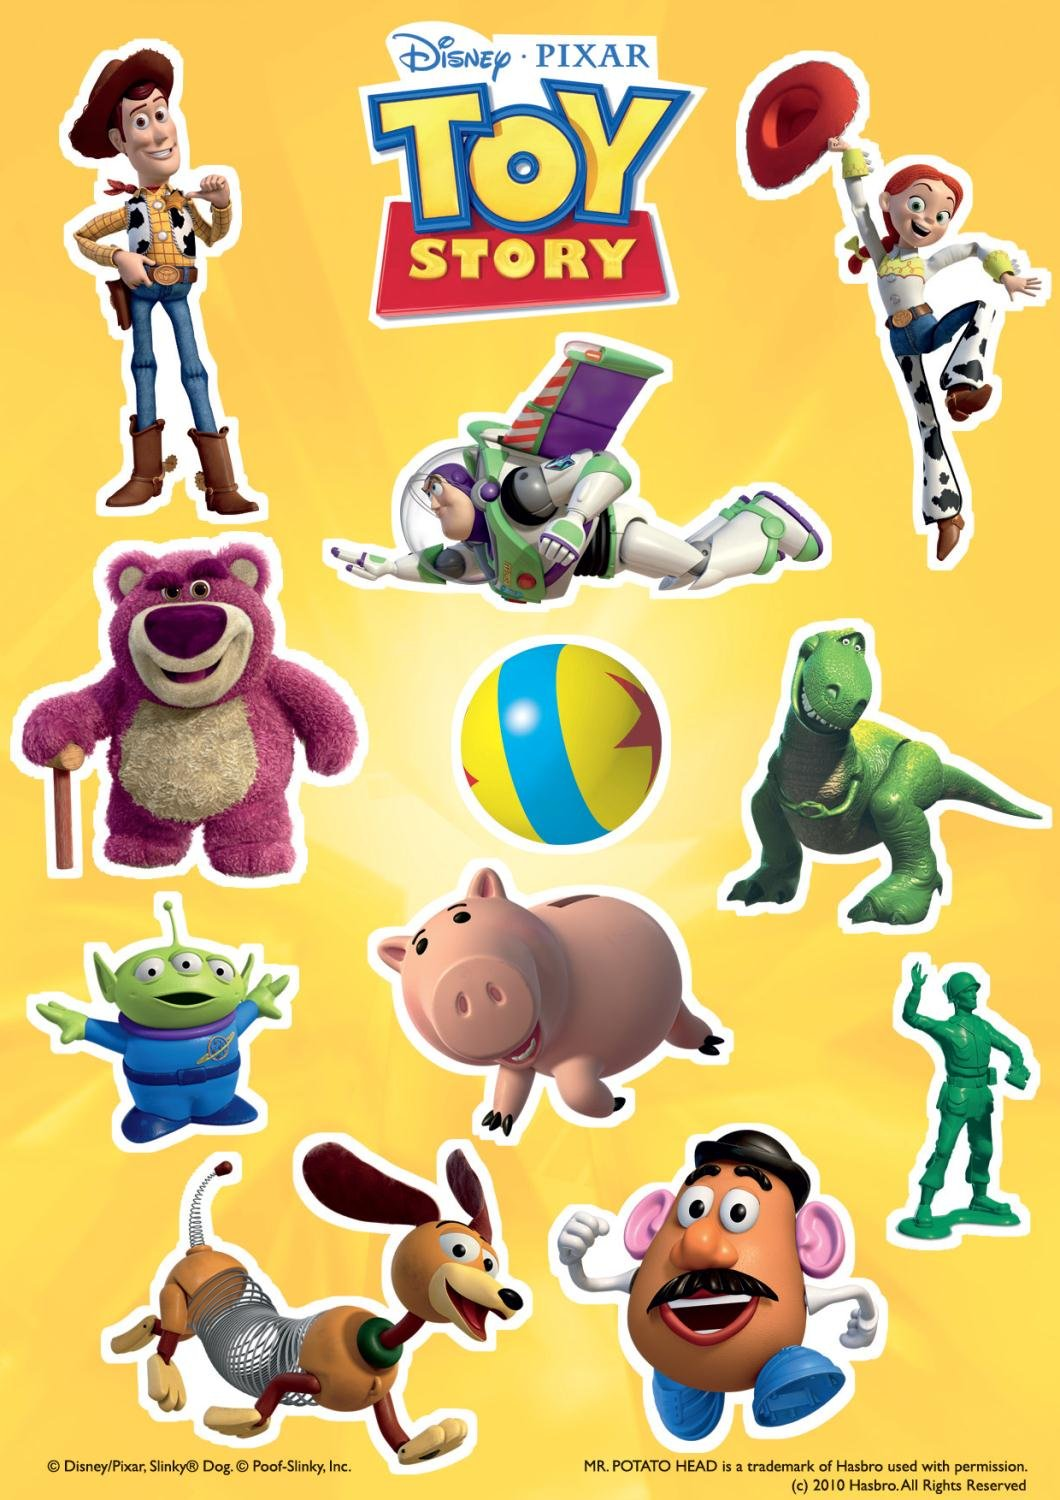 50 Pieces Disney 17159 Toy Story Jigsaw Puzzle Includes Free Toy Story Stickers